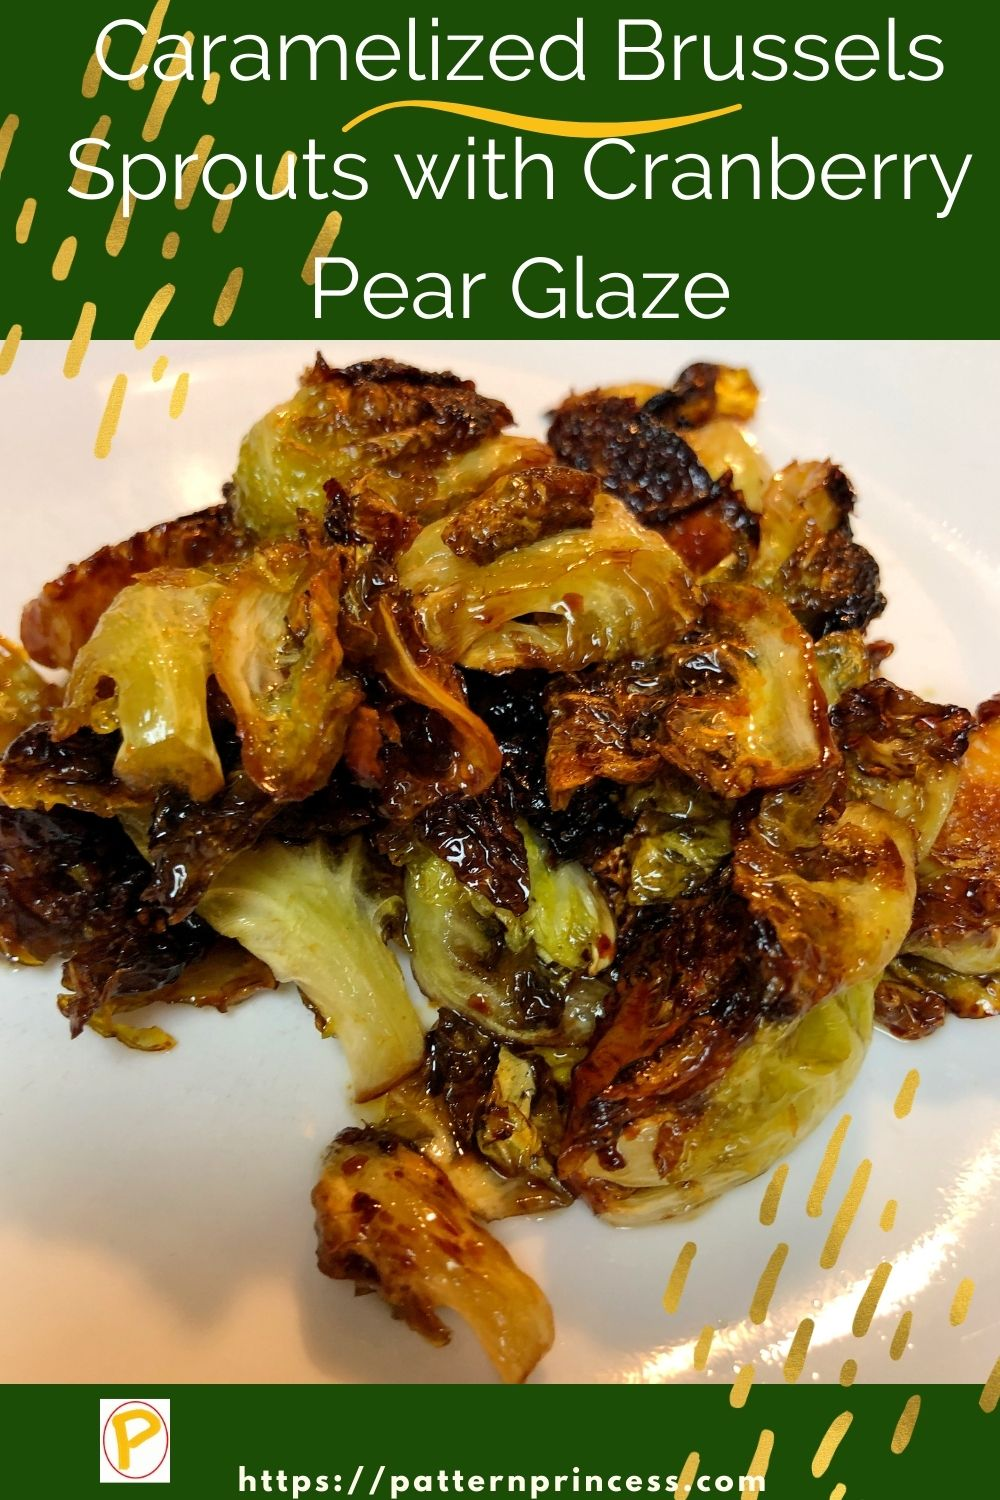 Caramelized Brussels Sprouts with Cranberry Pear Glaze